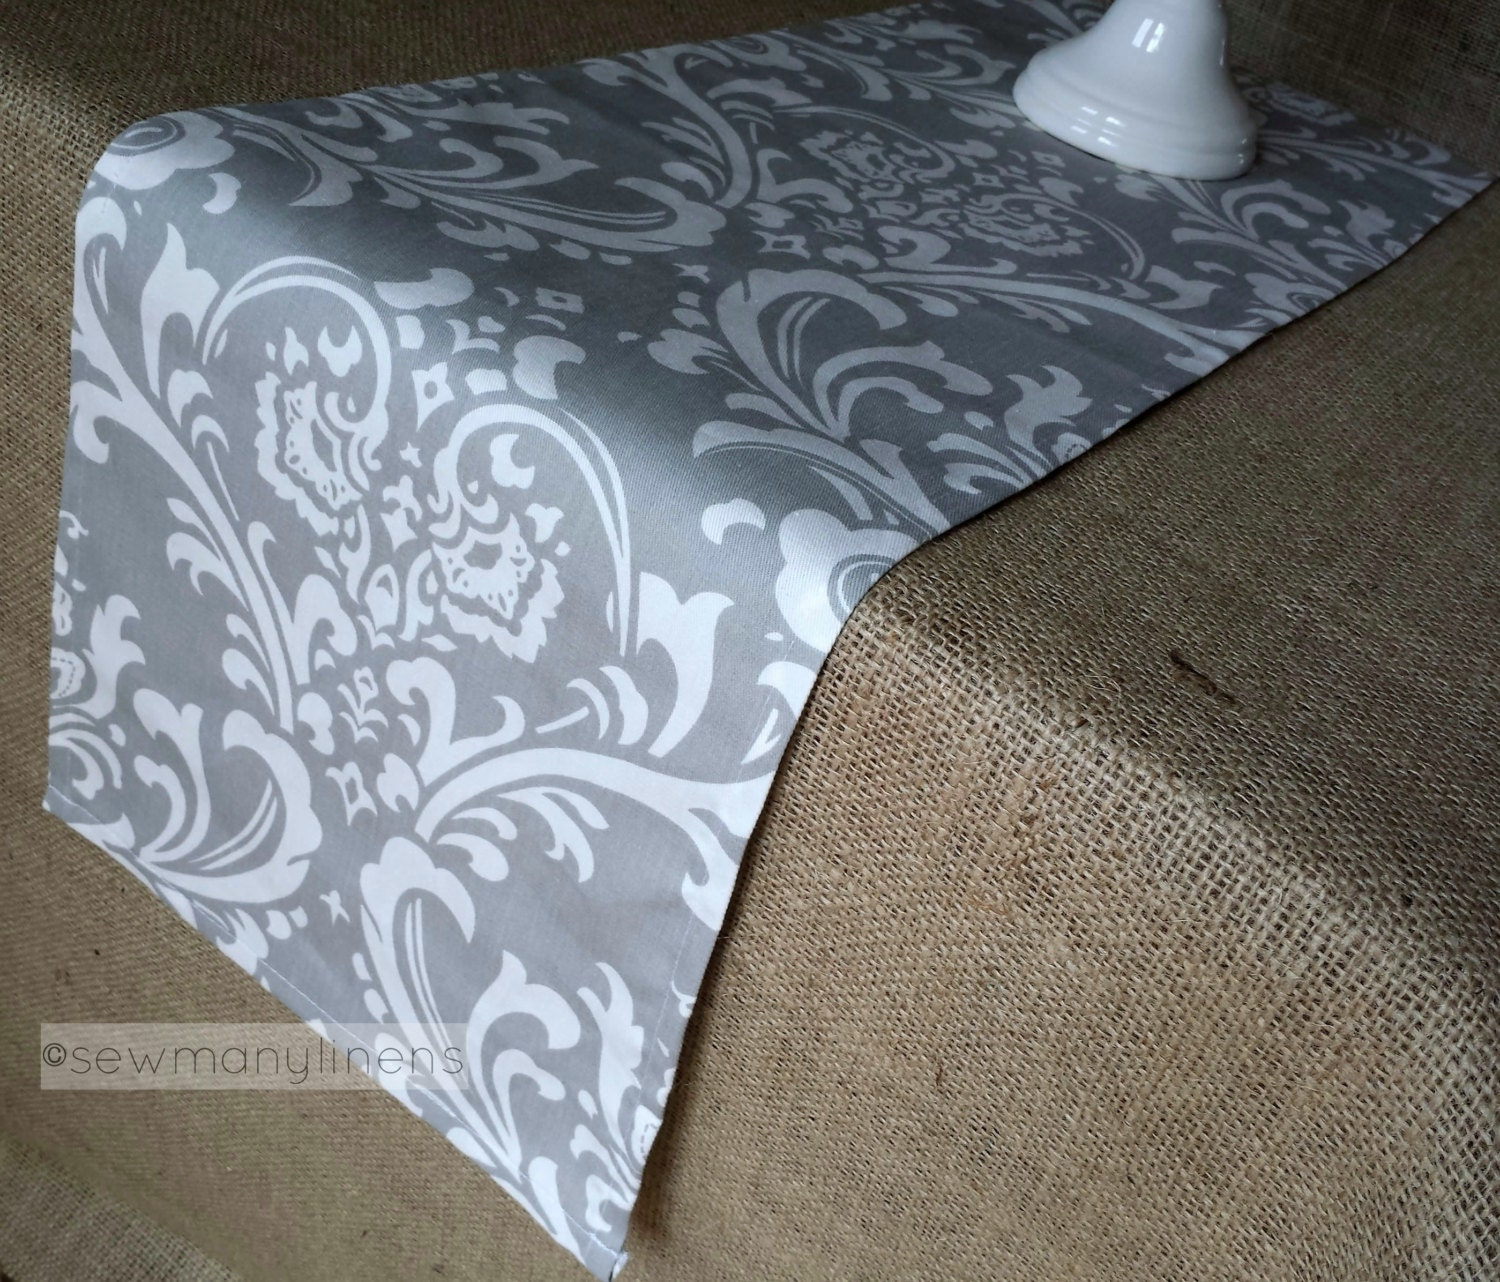 Dining Room Table Runner: Gray Table Runner Grey Floral Dining Room Kitchen Decor Table